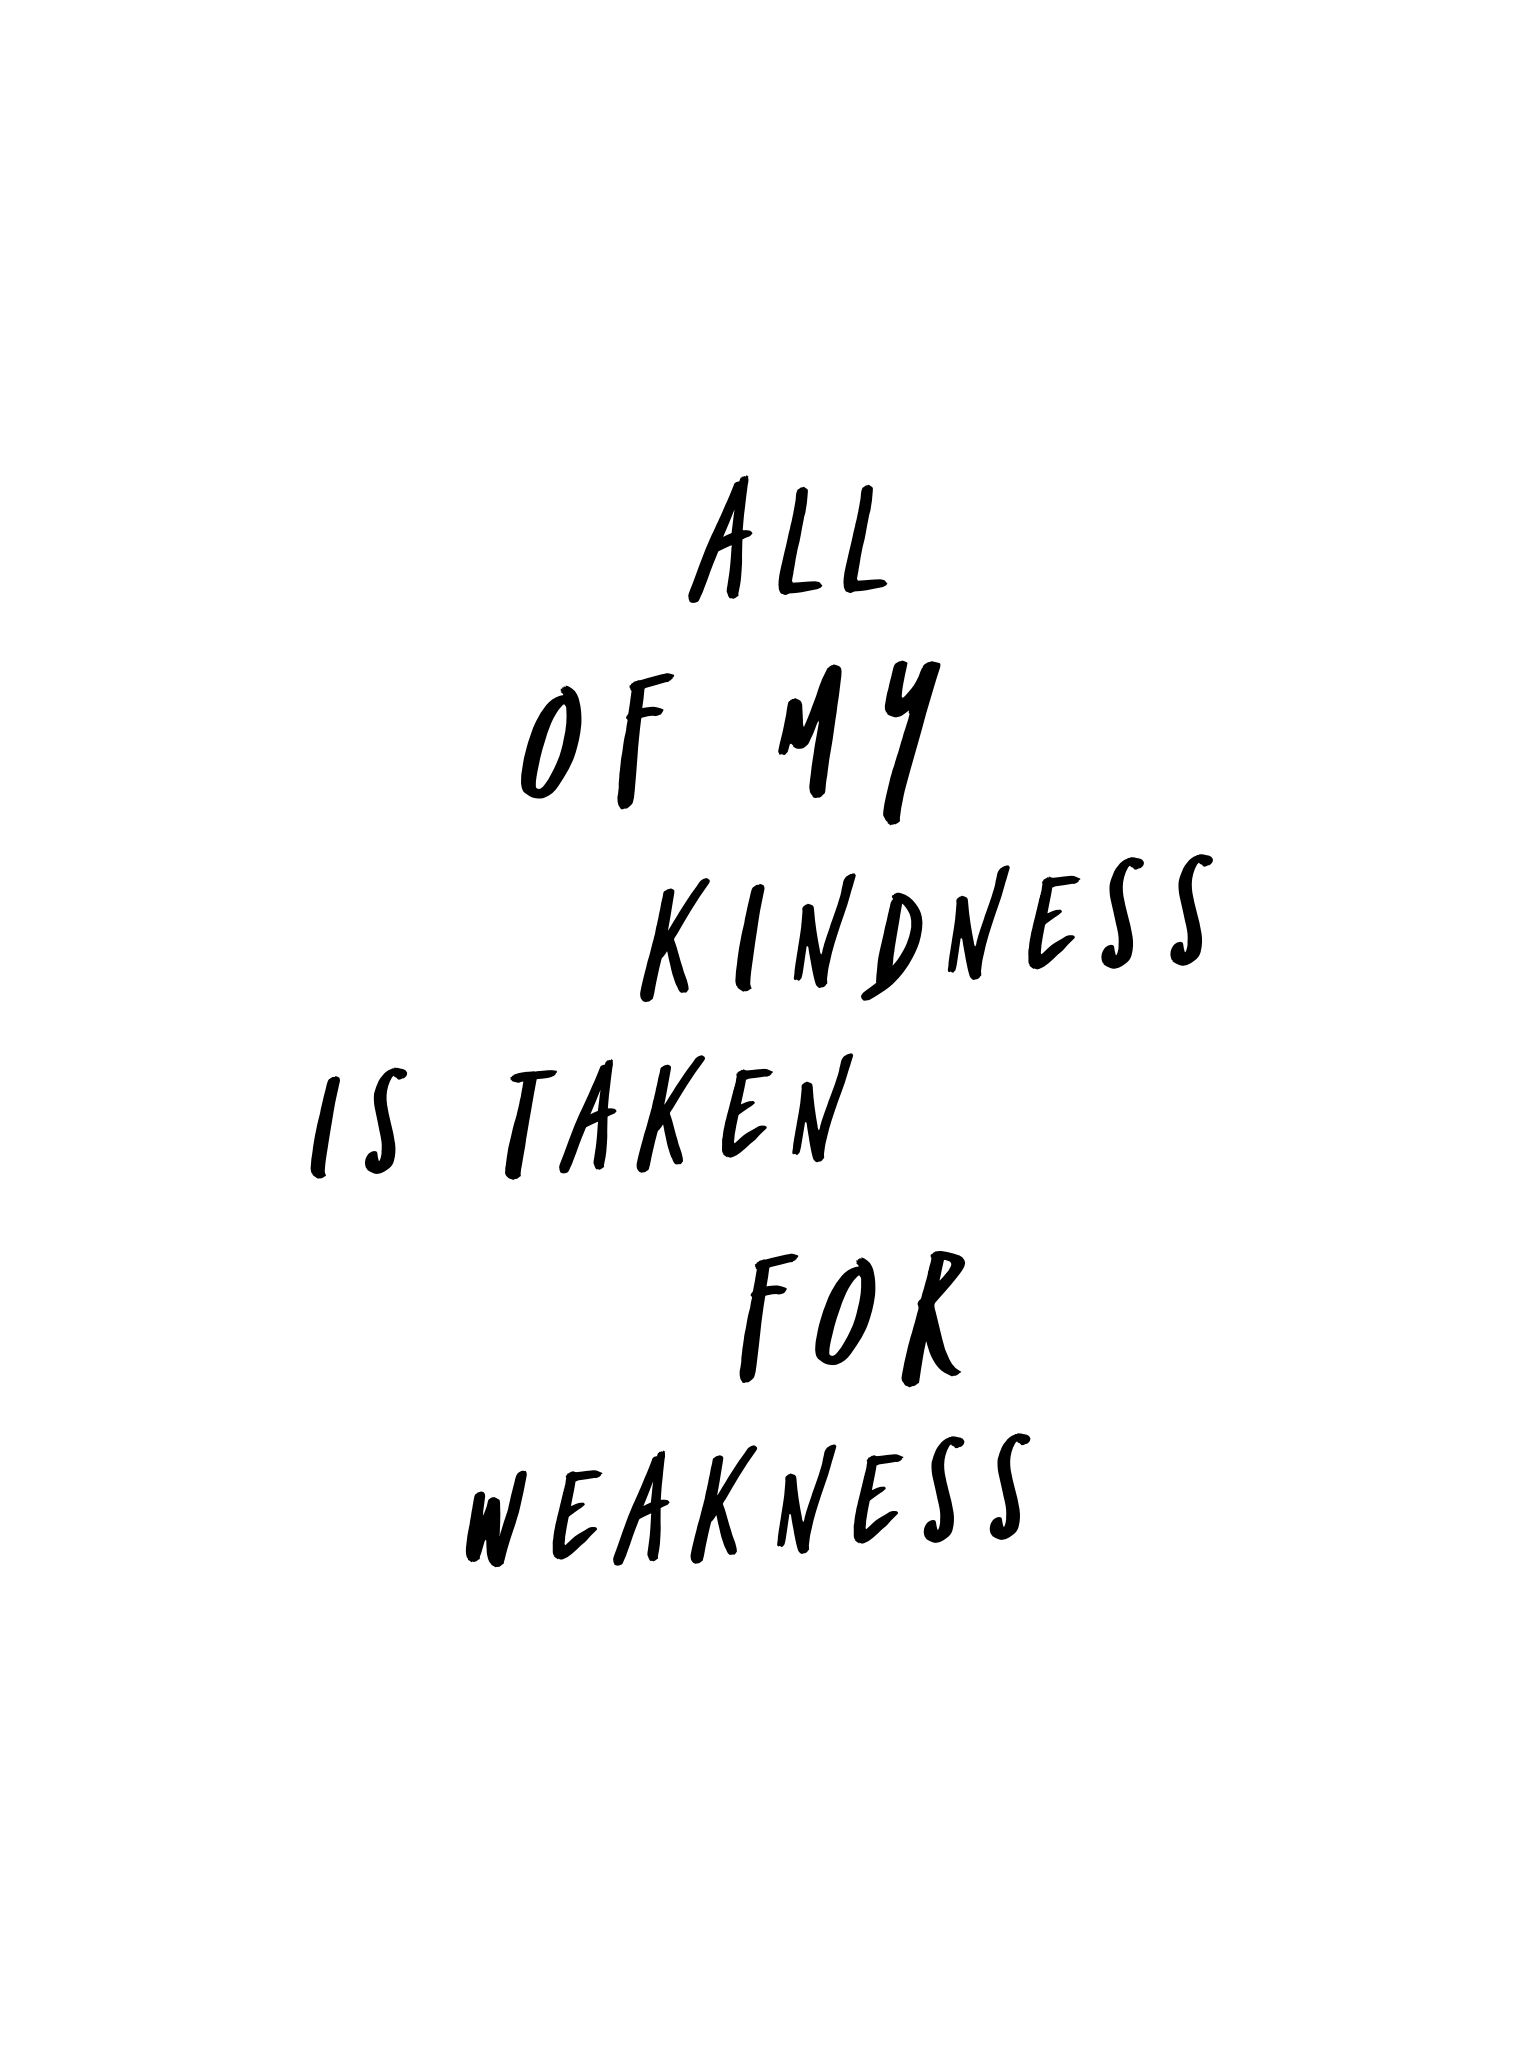 All of my kindness is taken for weakness Rihanna feat Kanye West